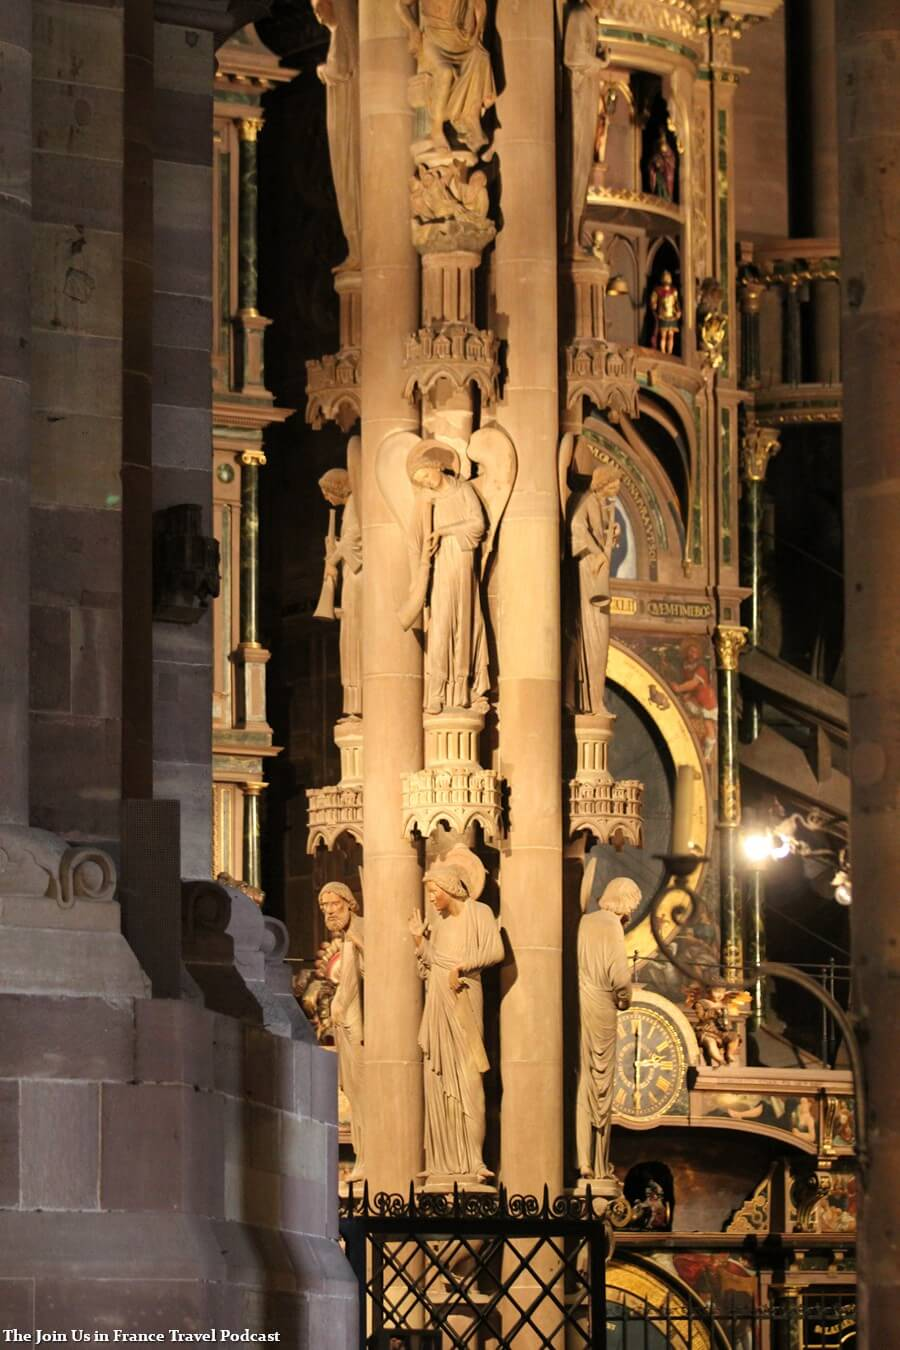 Detail inside of the Strasbourg Cathedral, a heavily decorated pillar